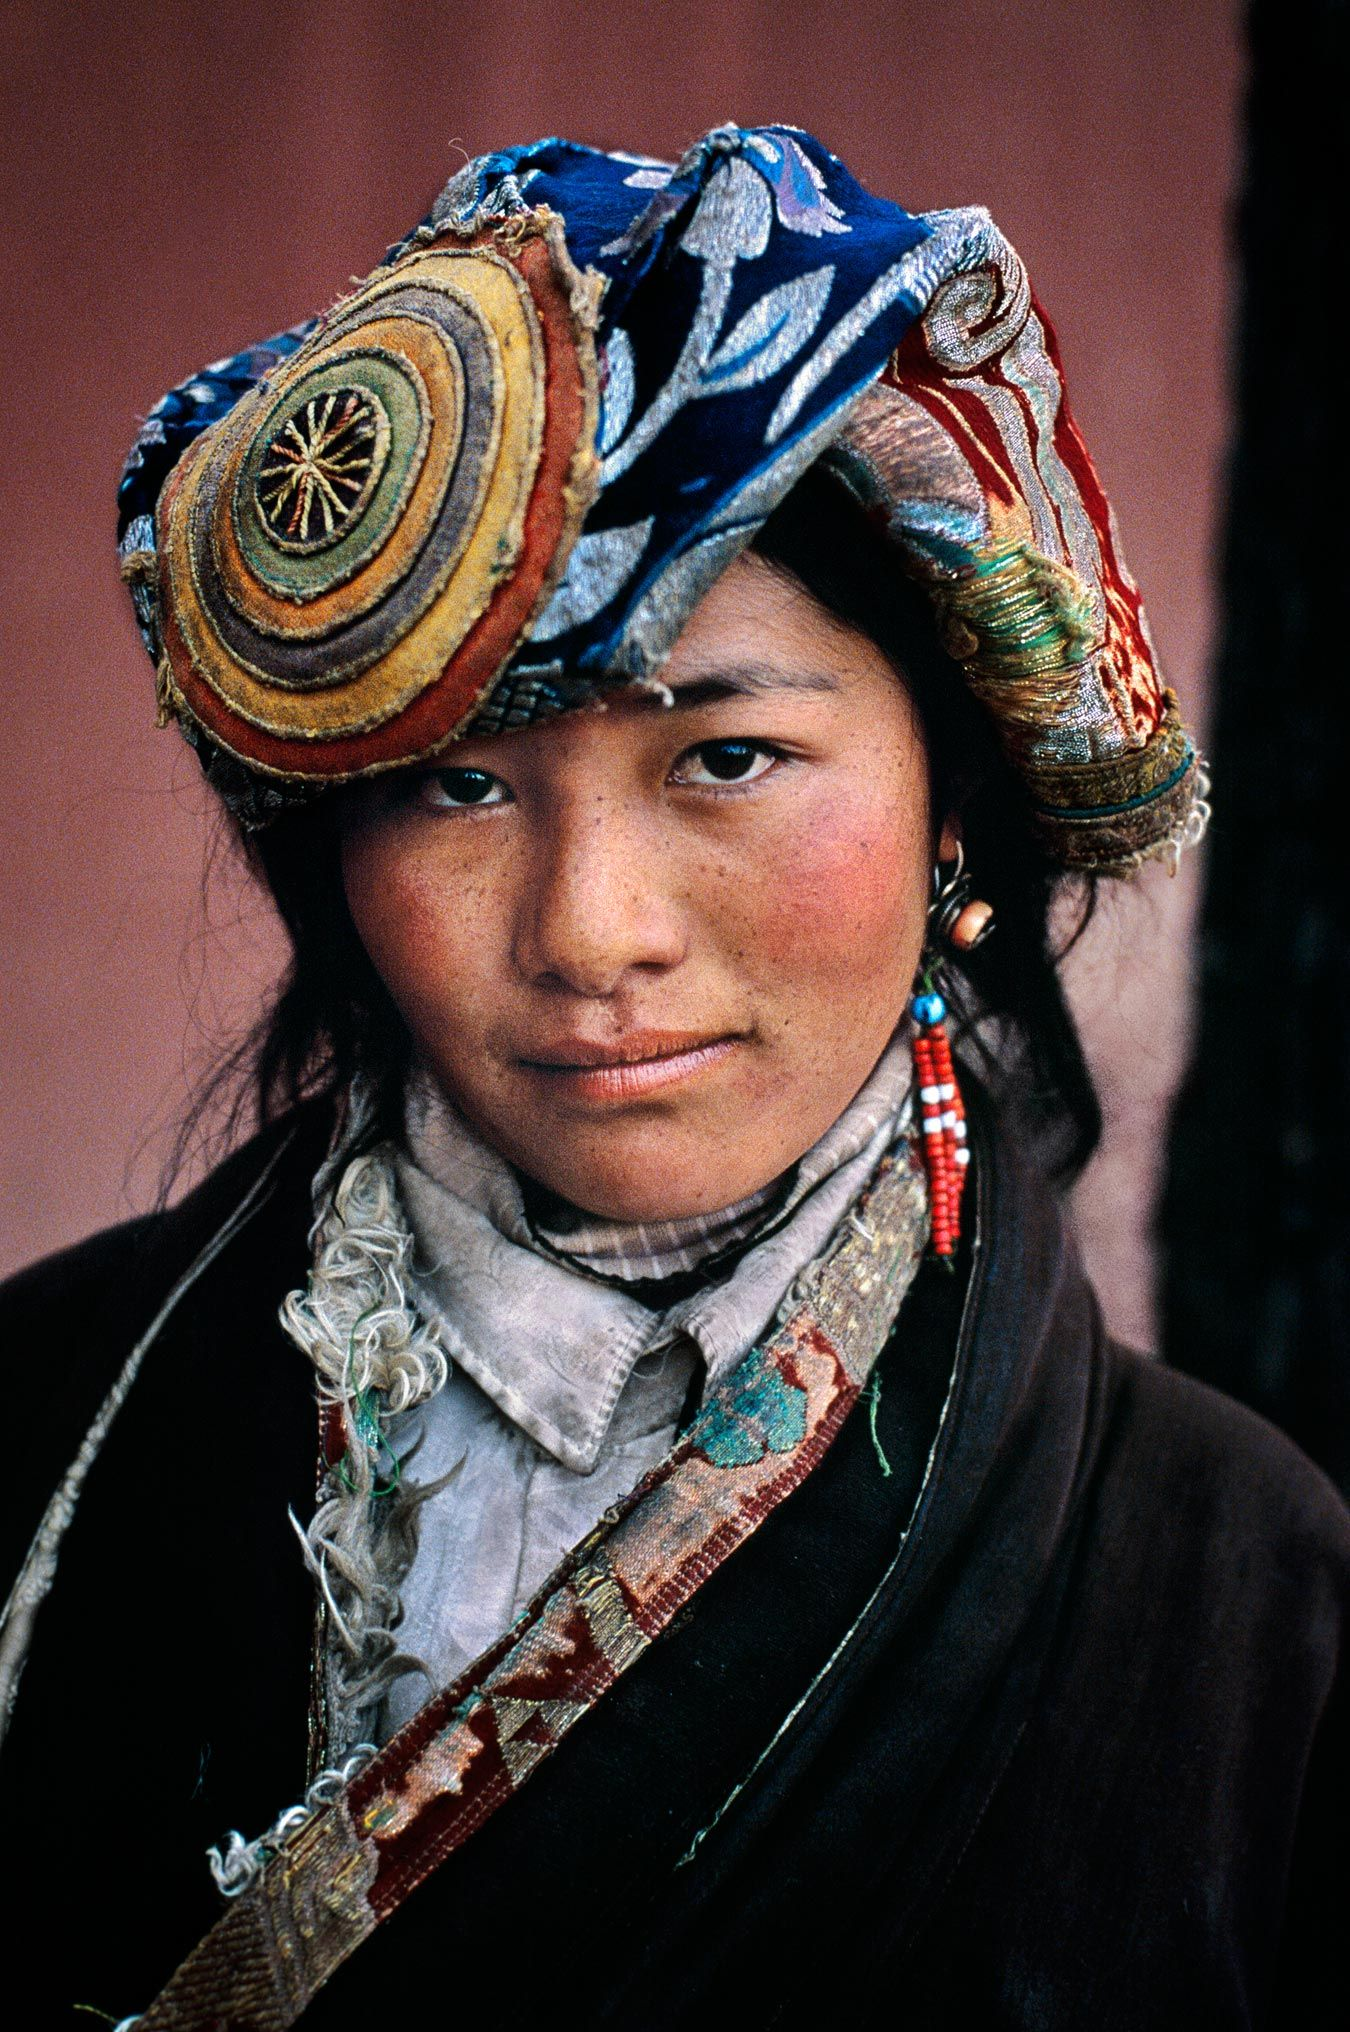 Young Woman in Lhasa | TIBET-10014/ Photography by Steve McCurry / Here you can download Steve's FREE PDF Catalog and order PRINTS / stevemccurry.com/...